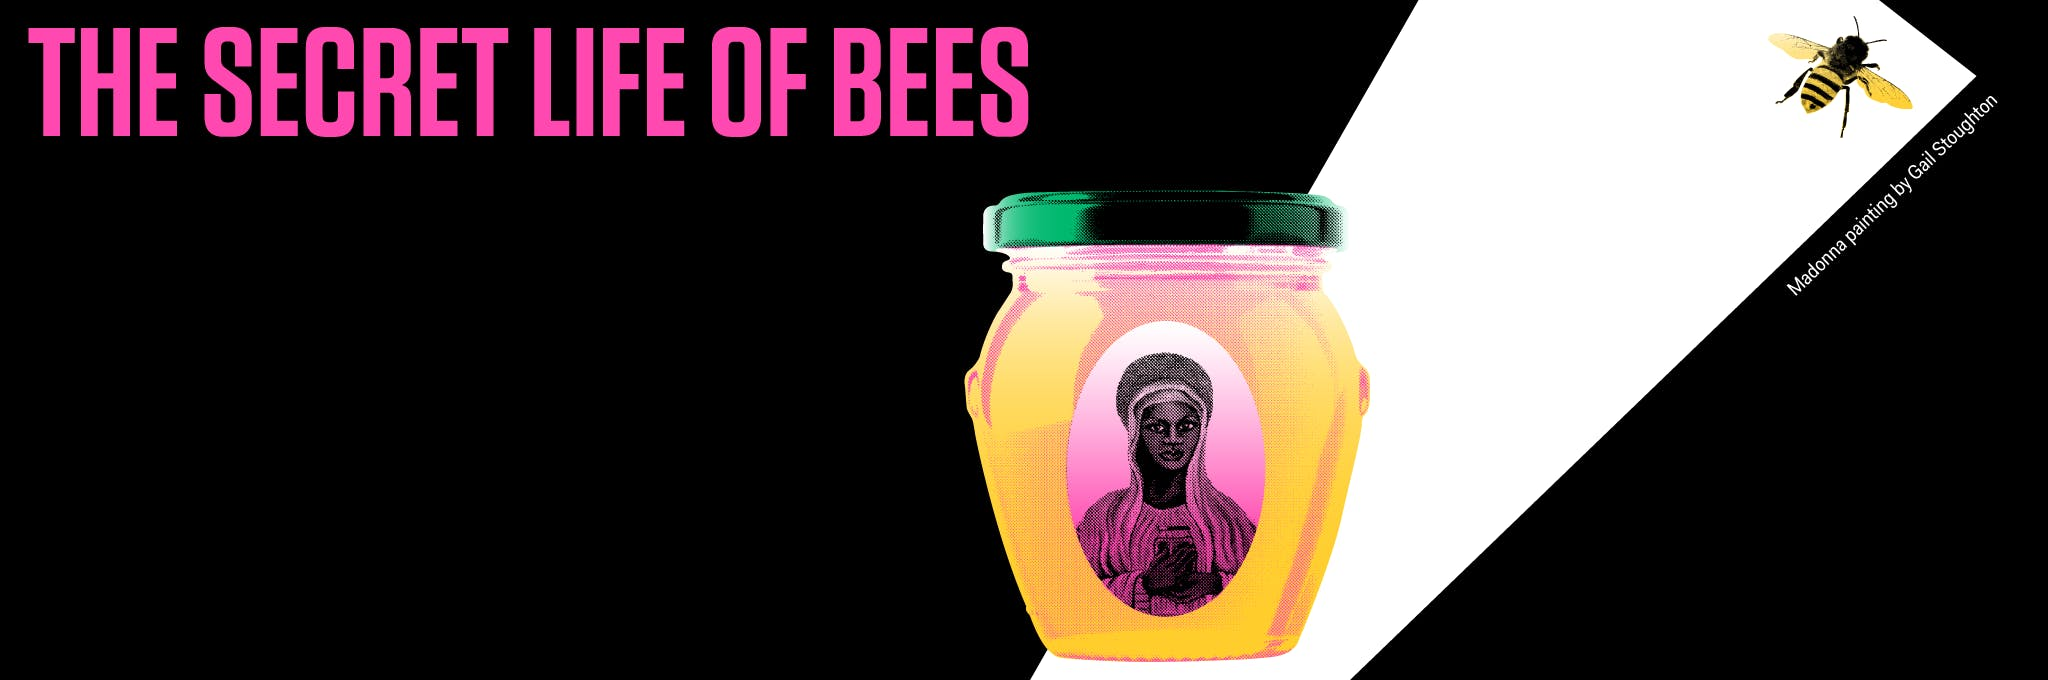 The Secret Life of Bees Logo